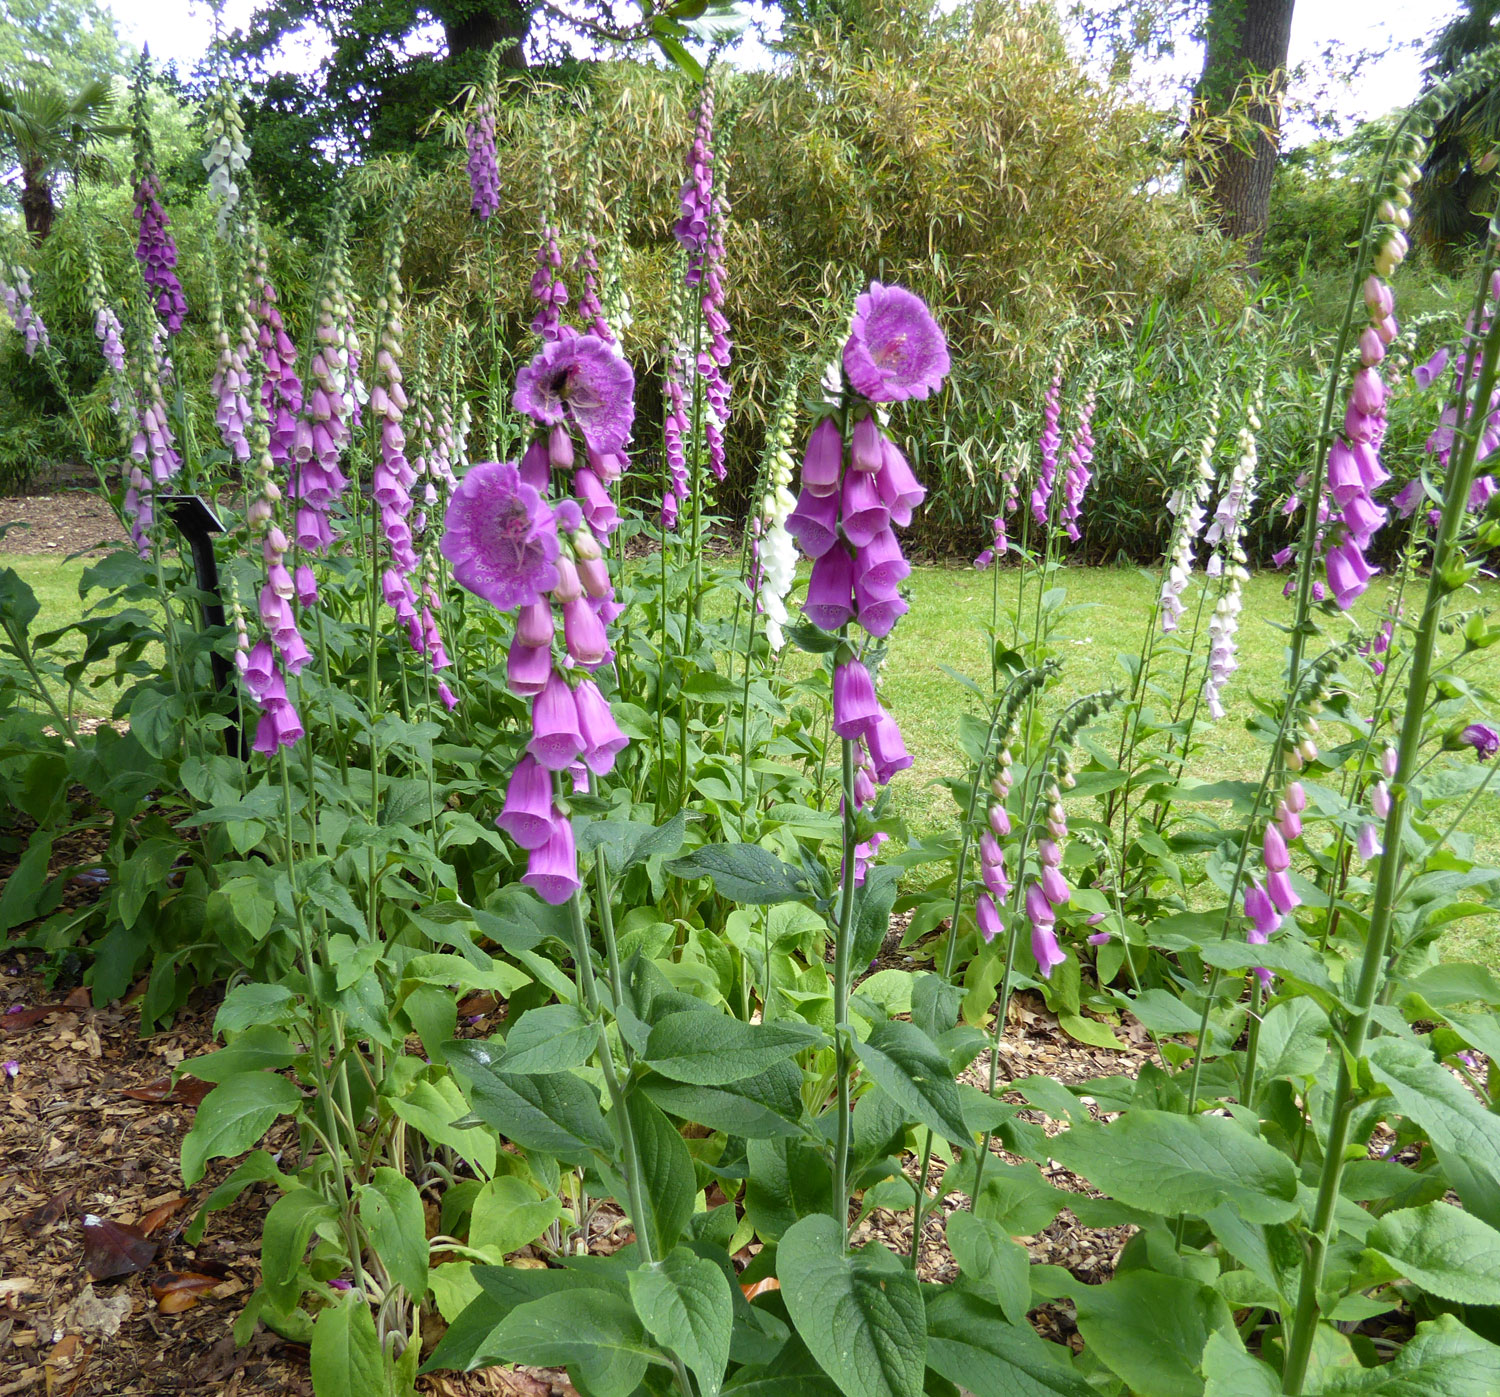 Purple foxgloves with two plants that have different shaped flowers